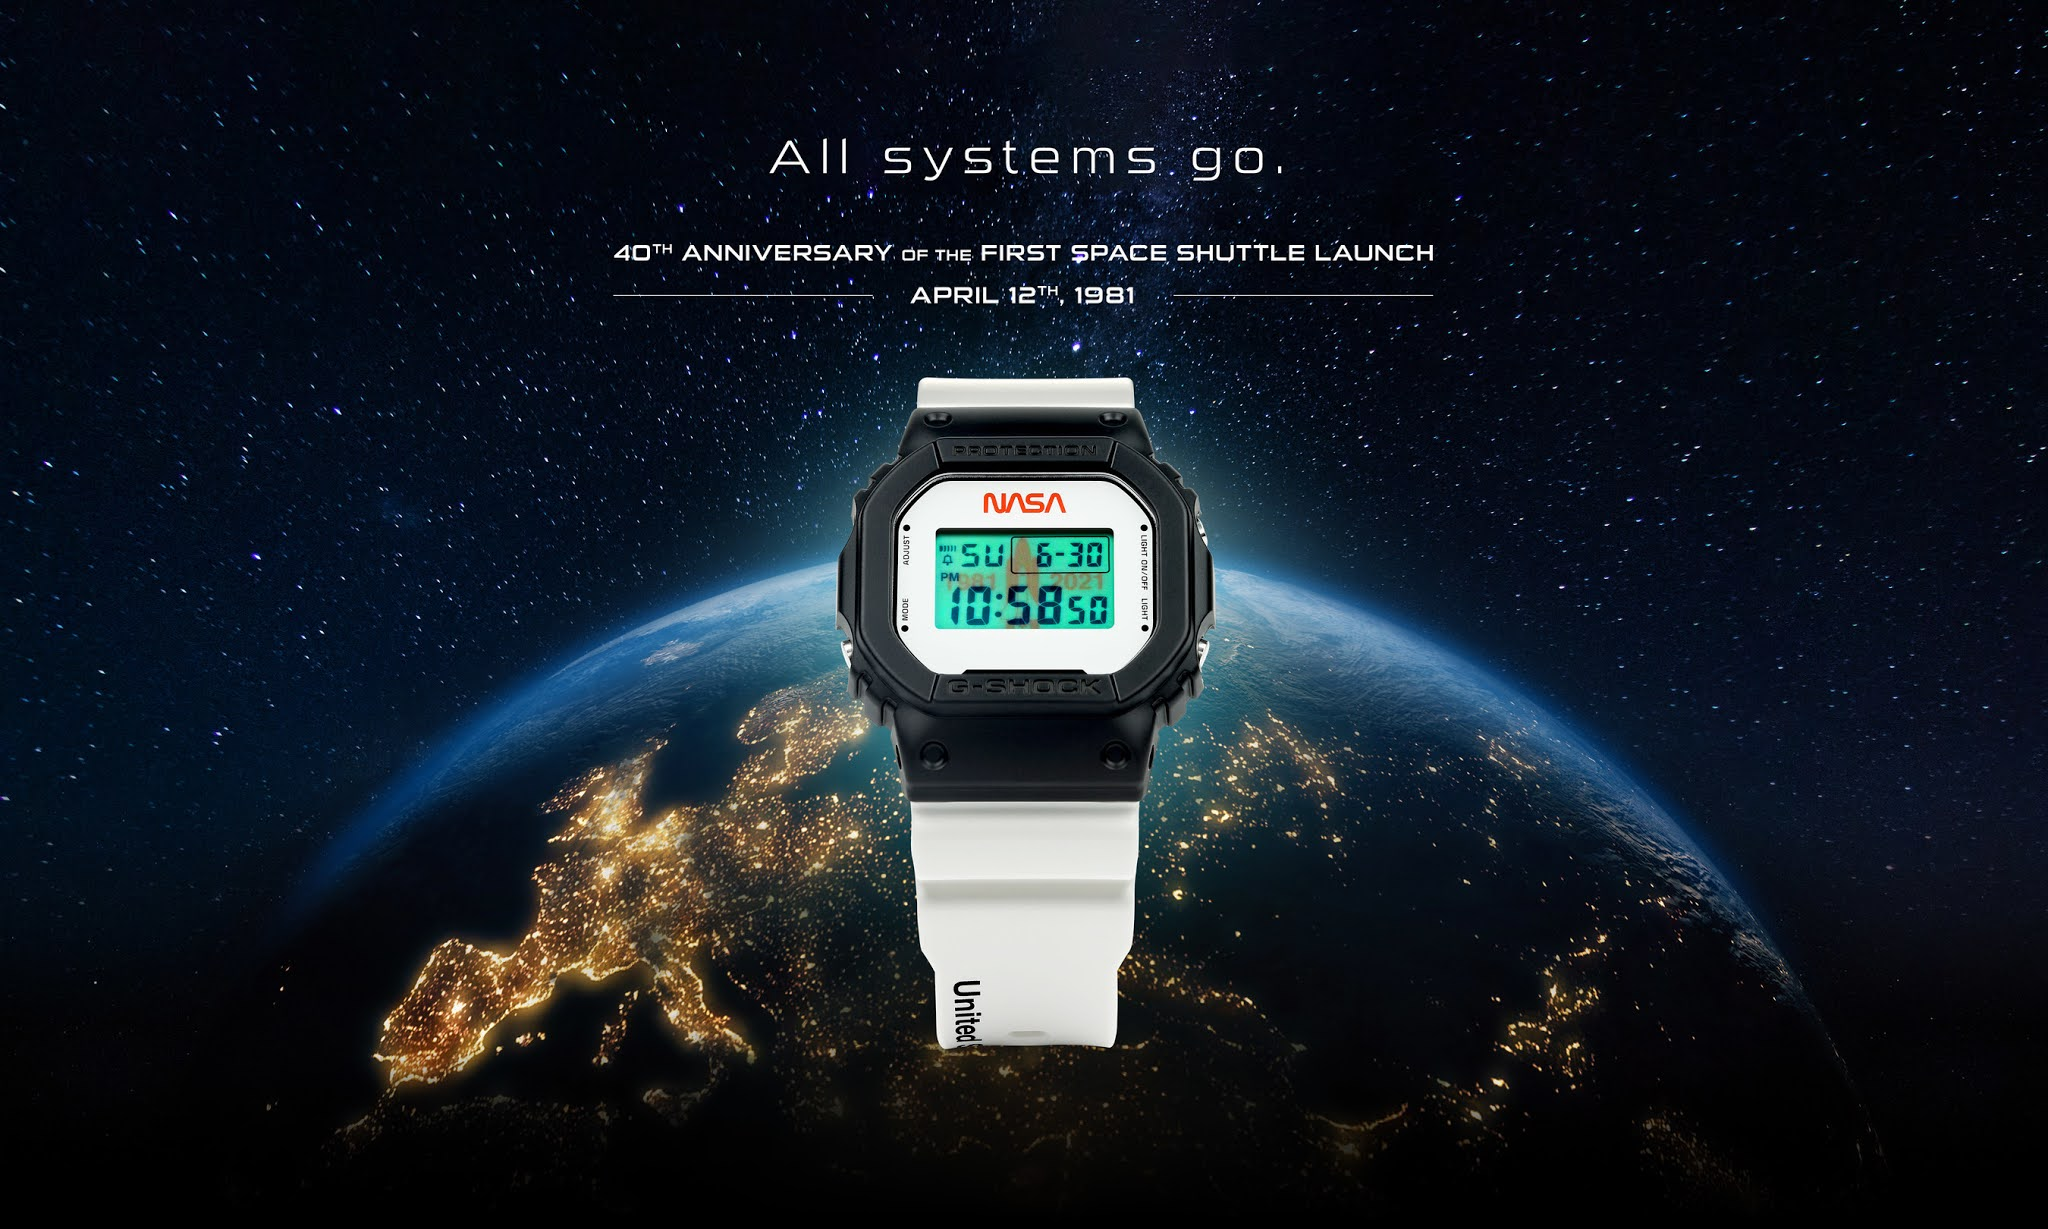 Casio Unveils New, Limited-Edition G-SHOCK Timepiece That Celebrates The 40th Anniversary Of First Space Shuttle Launch